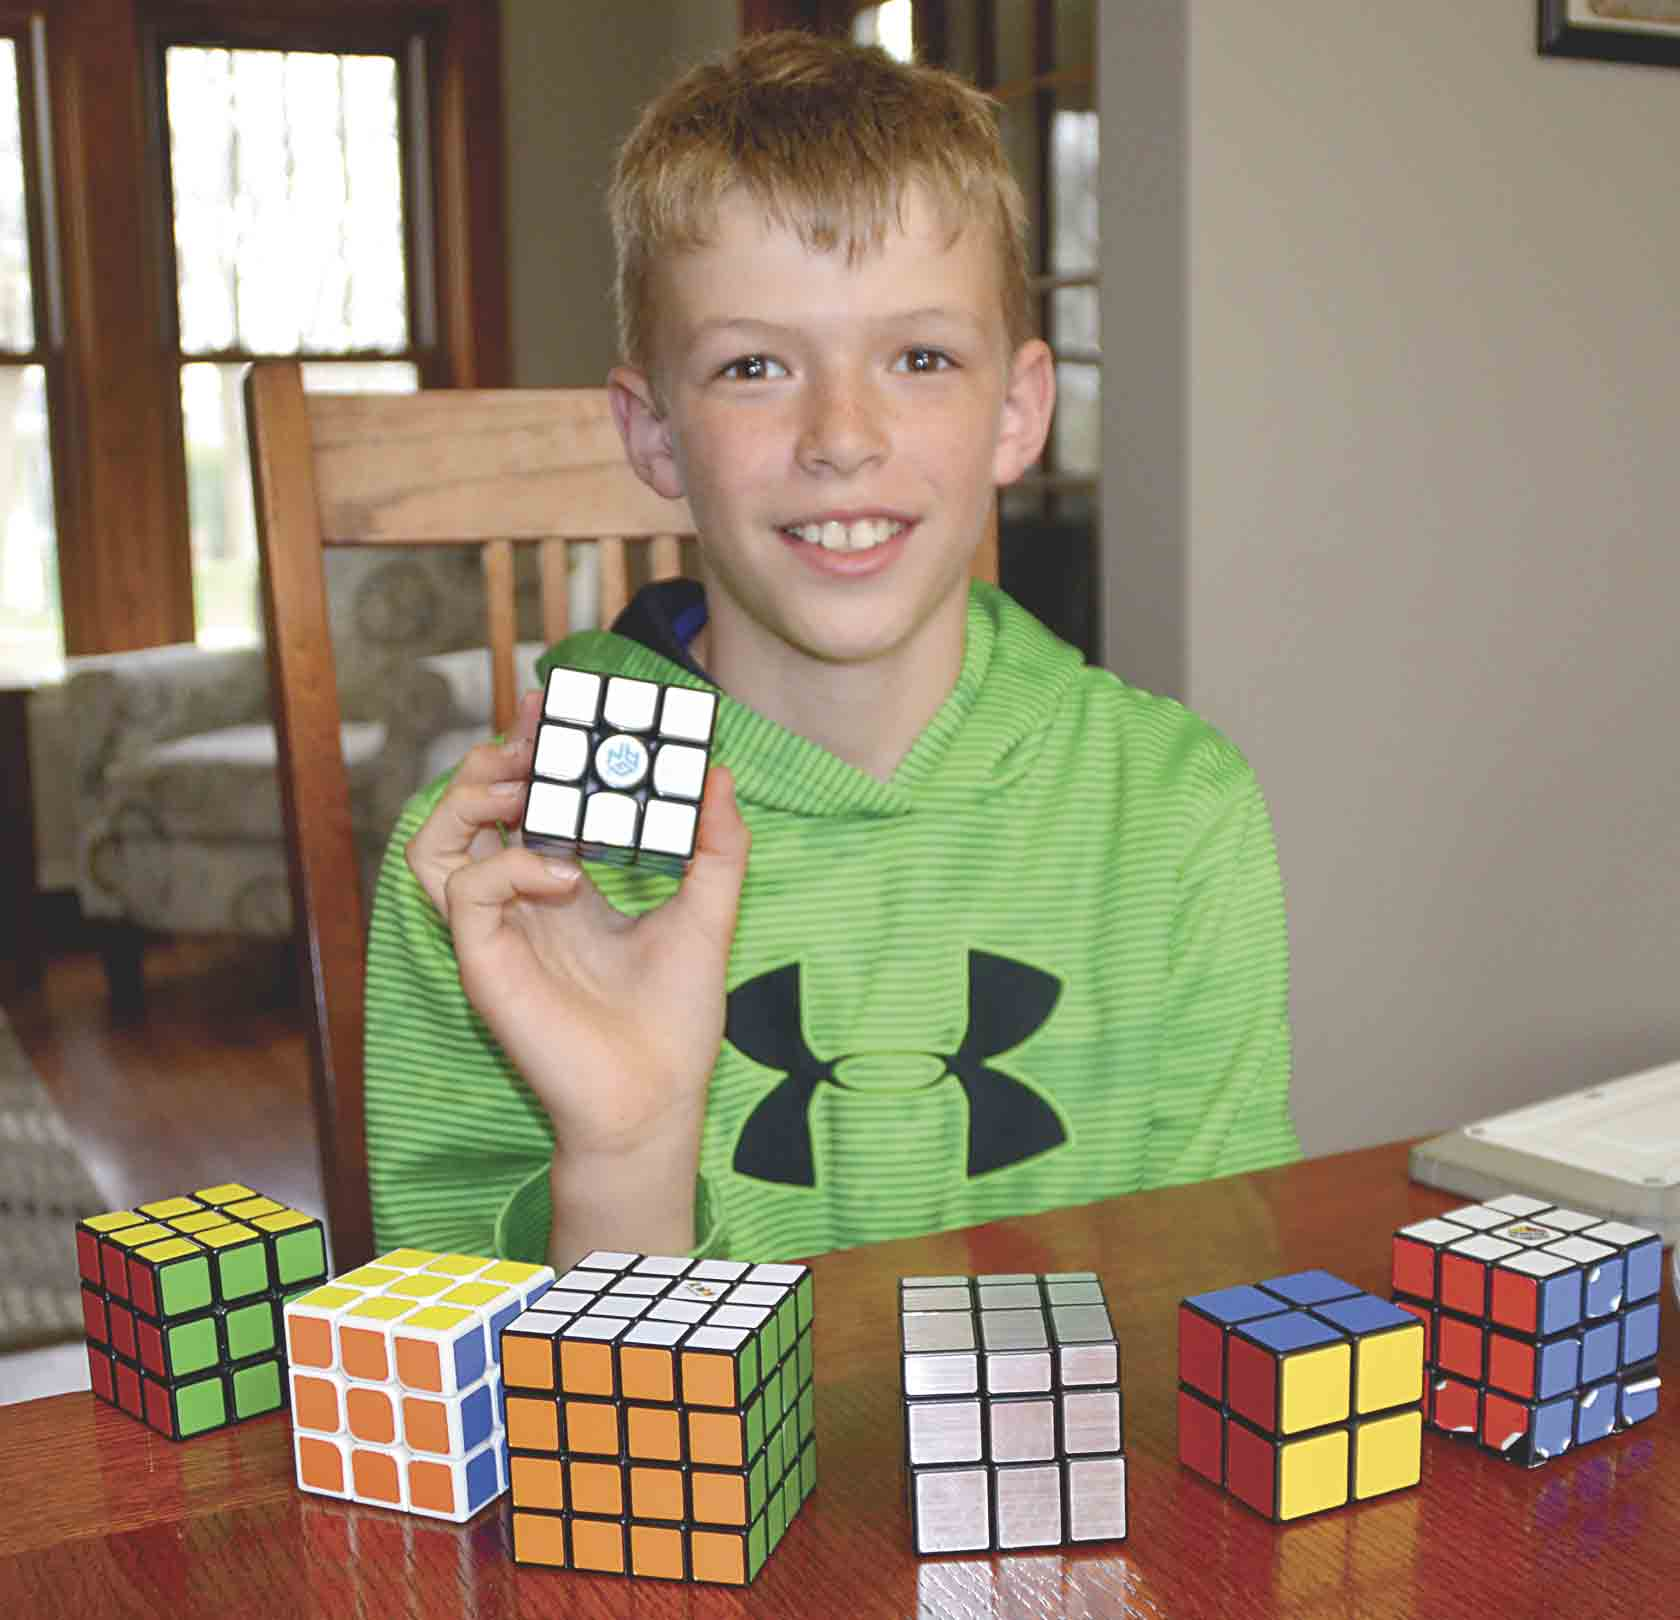 A few years ago, Decklyn Heins discovered the simple, yet complex Rubik's Cube on a random trip to Walmart. Since then, he has used YouTube to learn how to quickly solve the popular 1980s puzzle and moved onto other variations of the original. He recently bought a Speedcube Rubik...